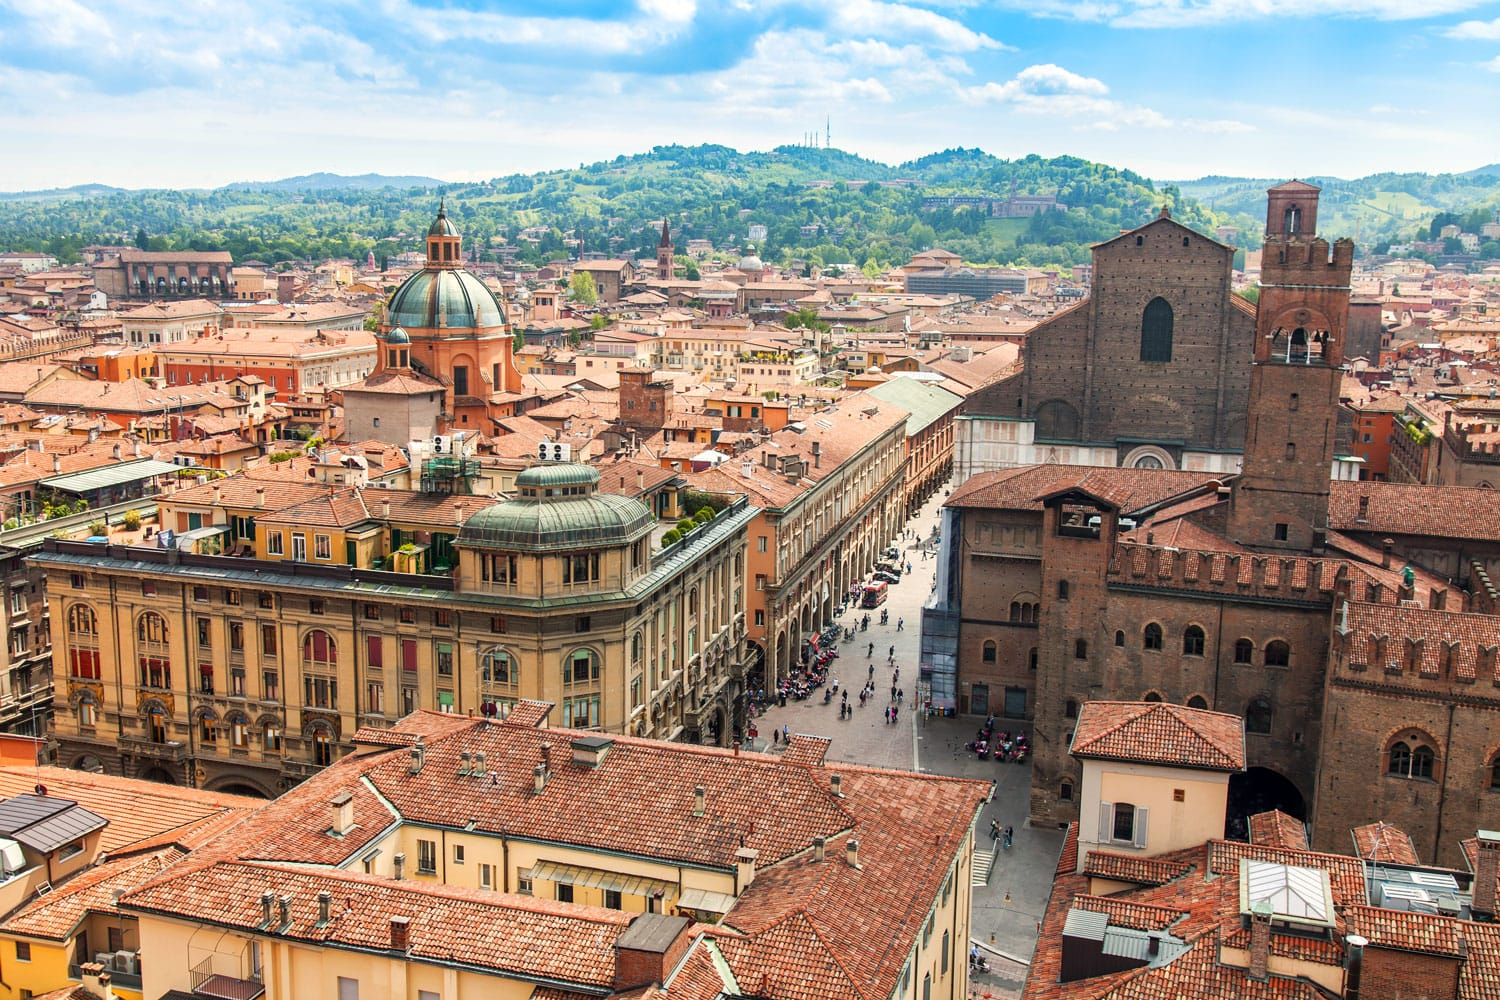 Top view of the old city in Bologna, Italy